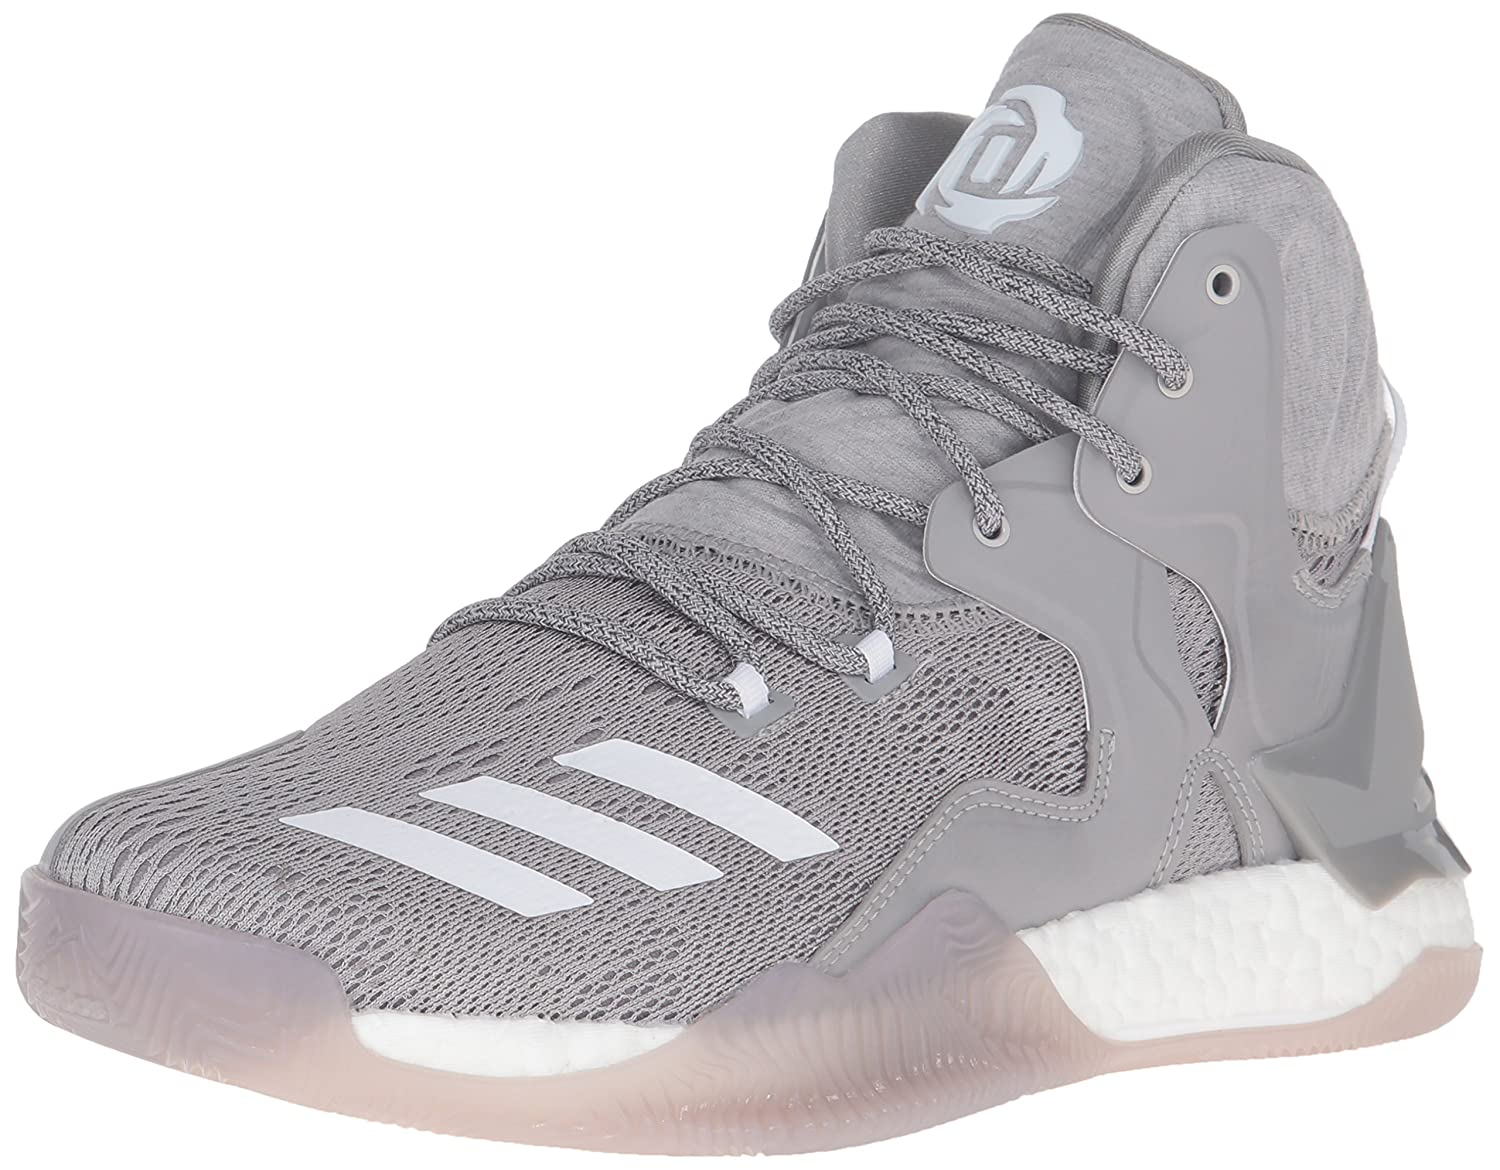 pretty nice 6efc7 73c8c Amazon.com   adidas Performance Men u0027s D Rose 7 Basketball Shoe    Shoes